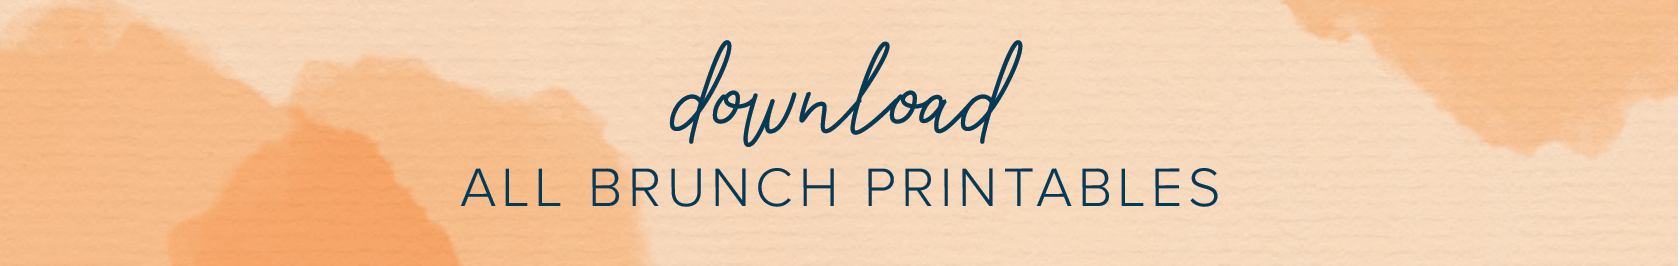 download all brunch printables